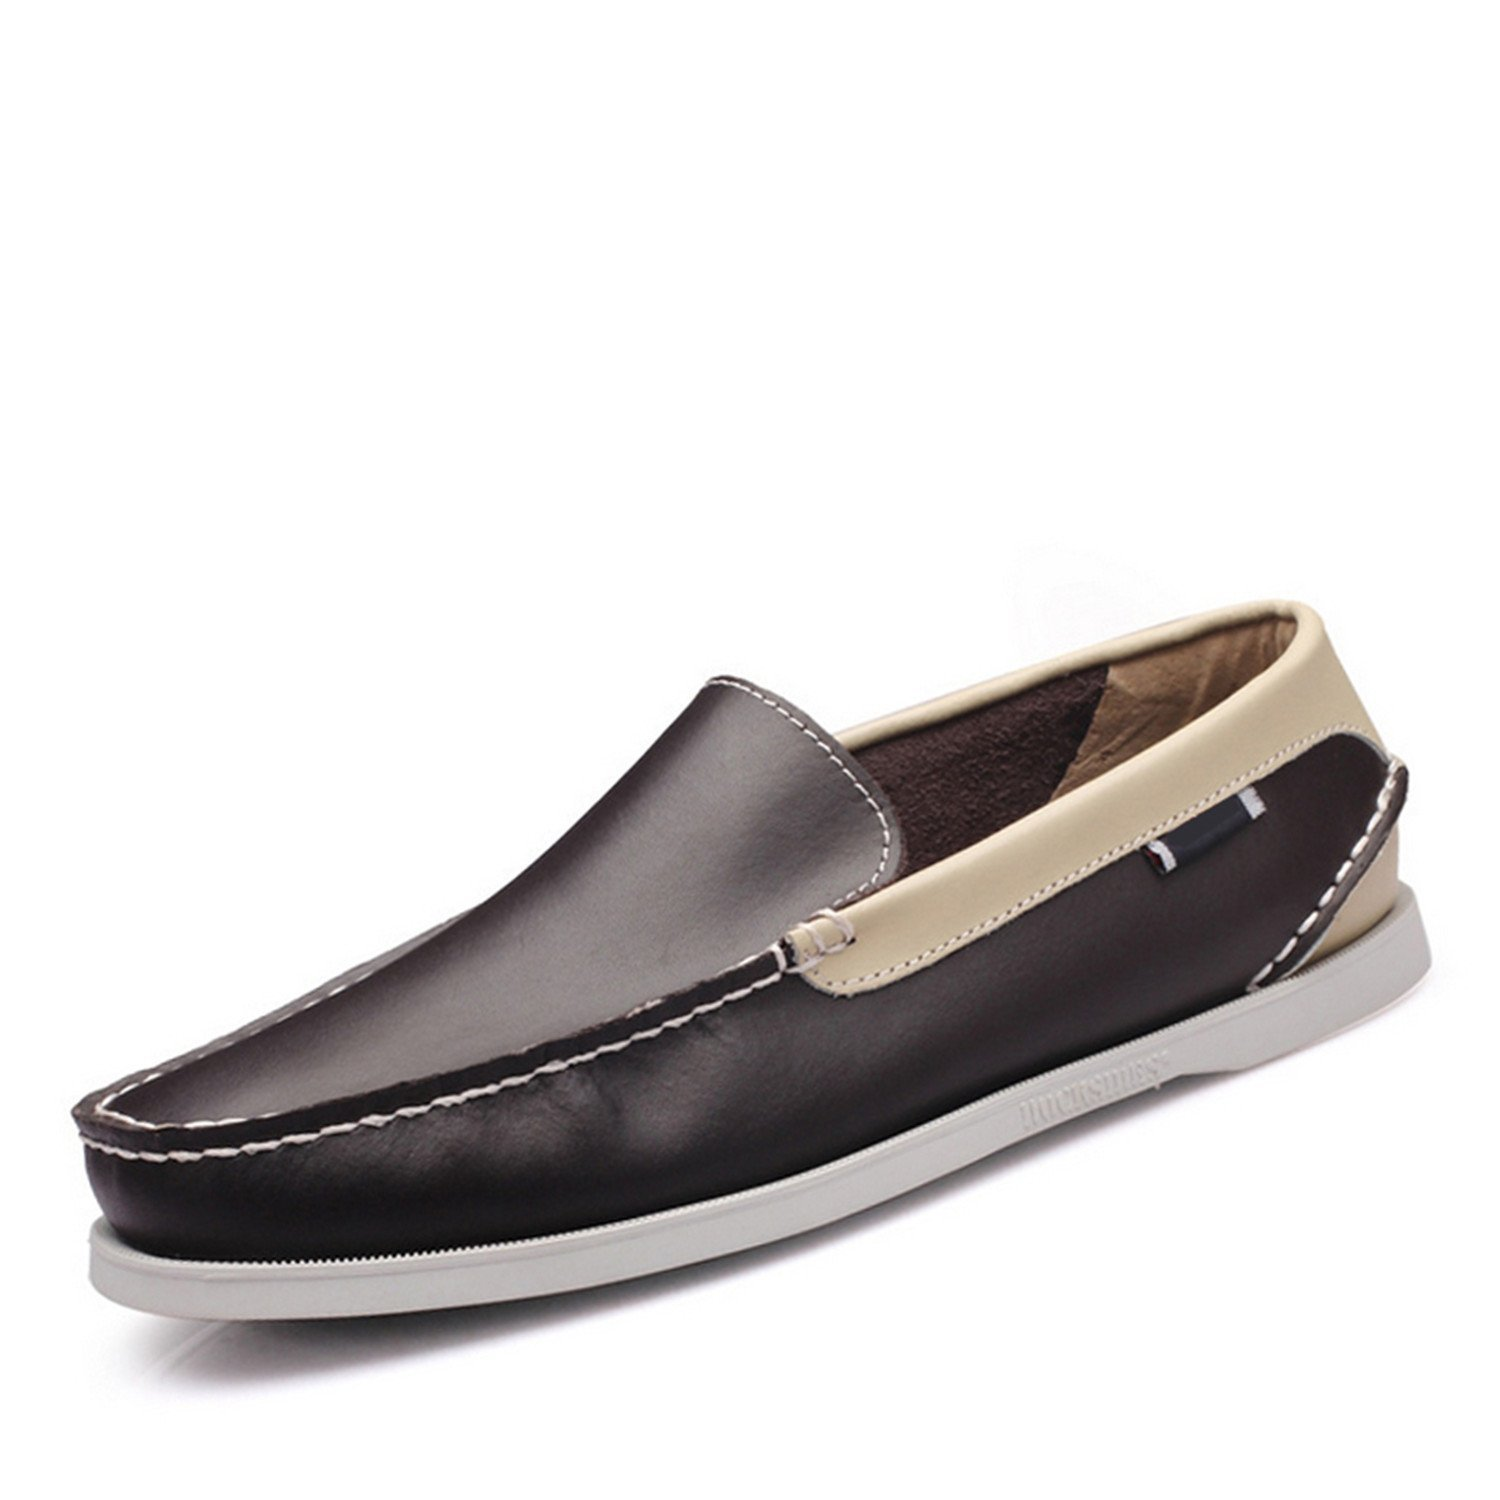 Bradleybla New Fashion Boat Shoes Men Slip on Genuine Leather Loafers Breathable Driving Shoes Men Soft Moccasins Comfortable Casual Shoes